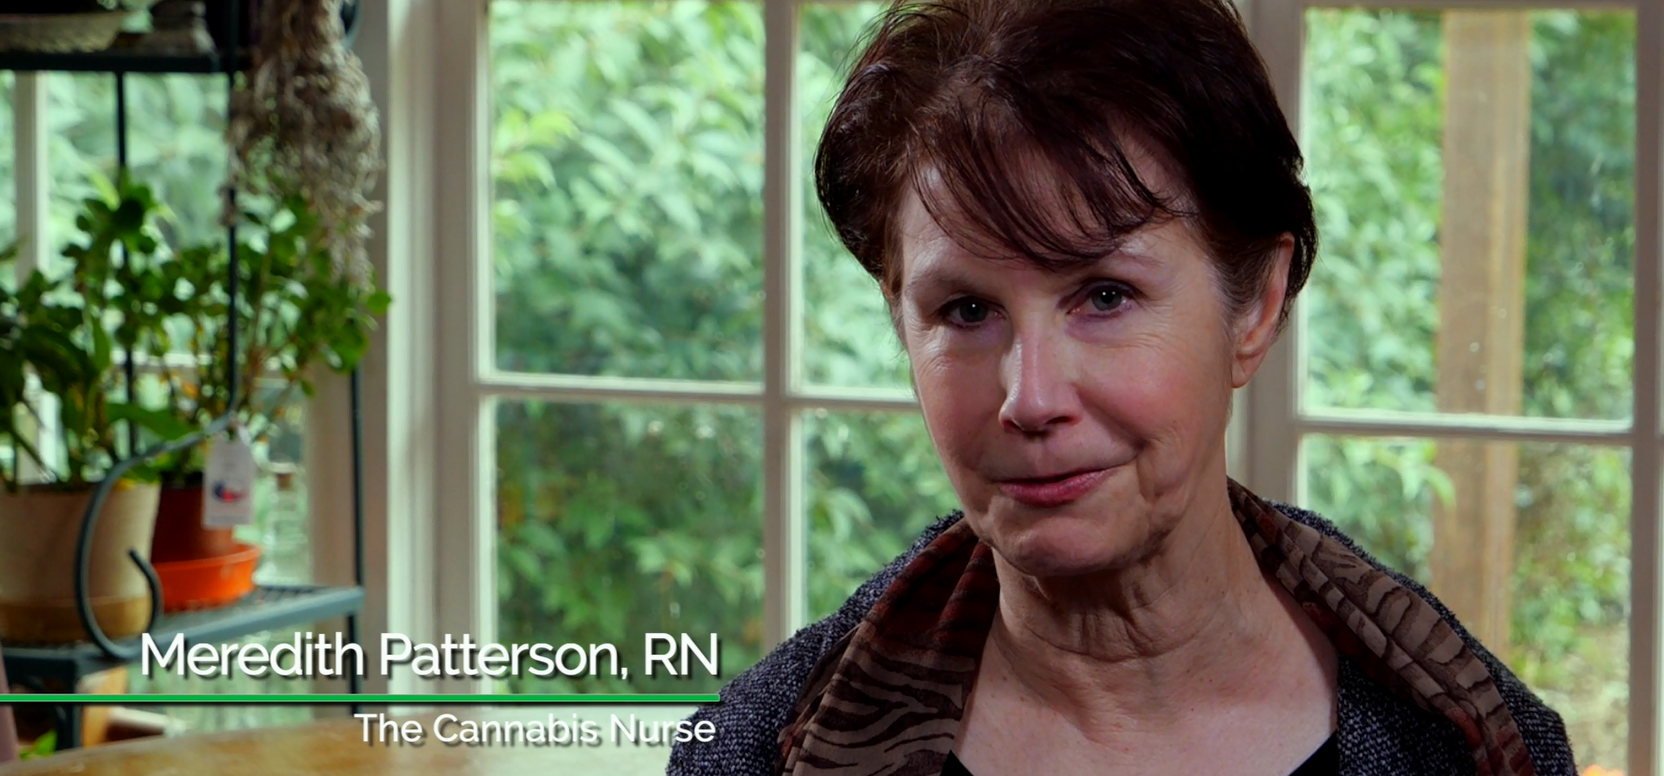 Meredith Patterson, the Cannabis Brain Nurse, introduces the CBN cannabinoid